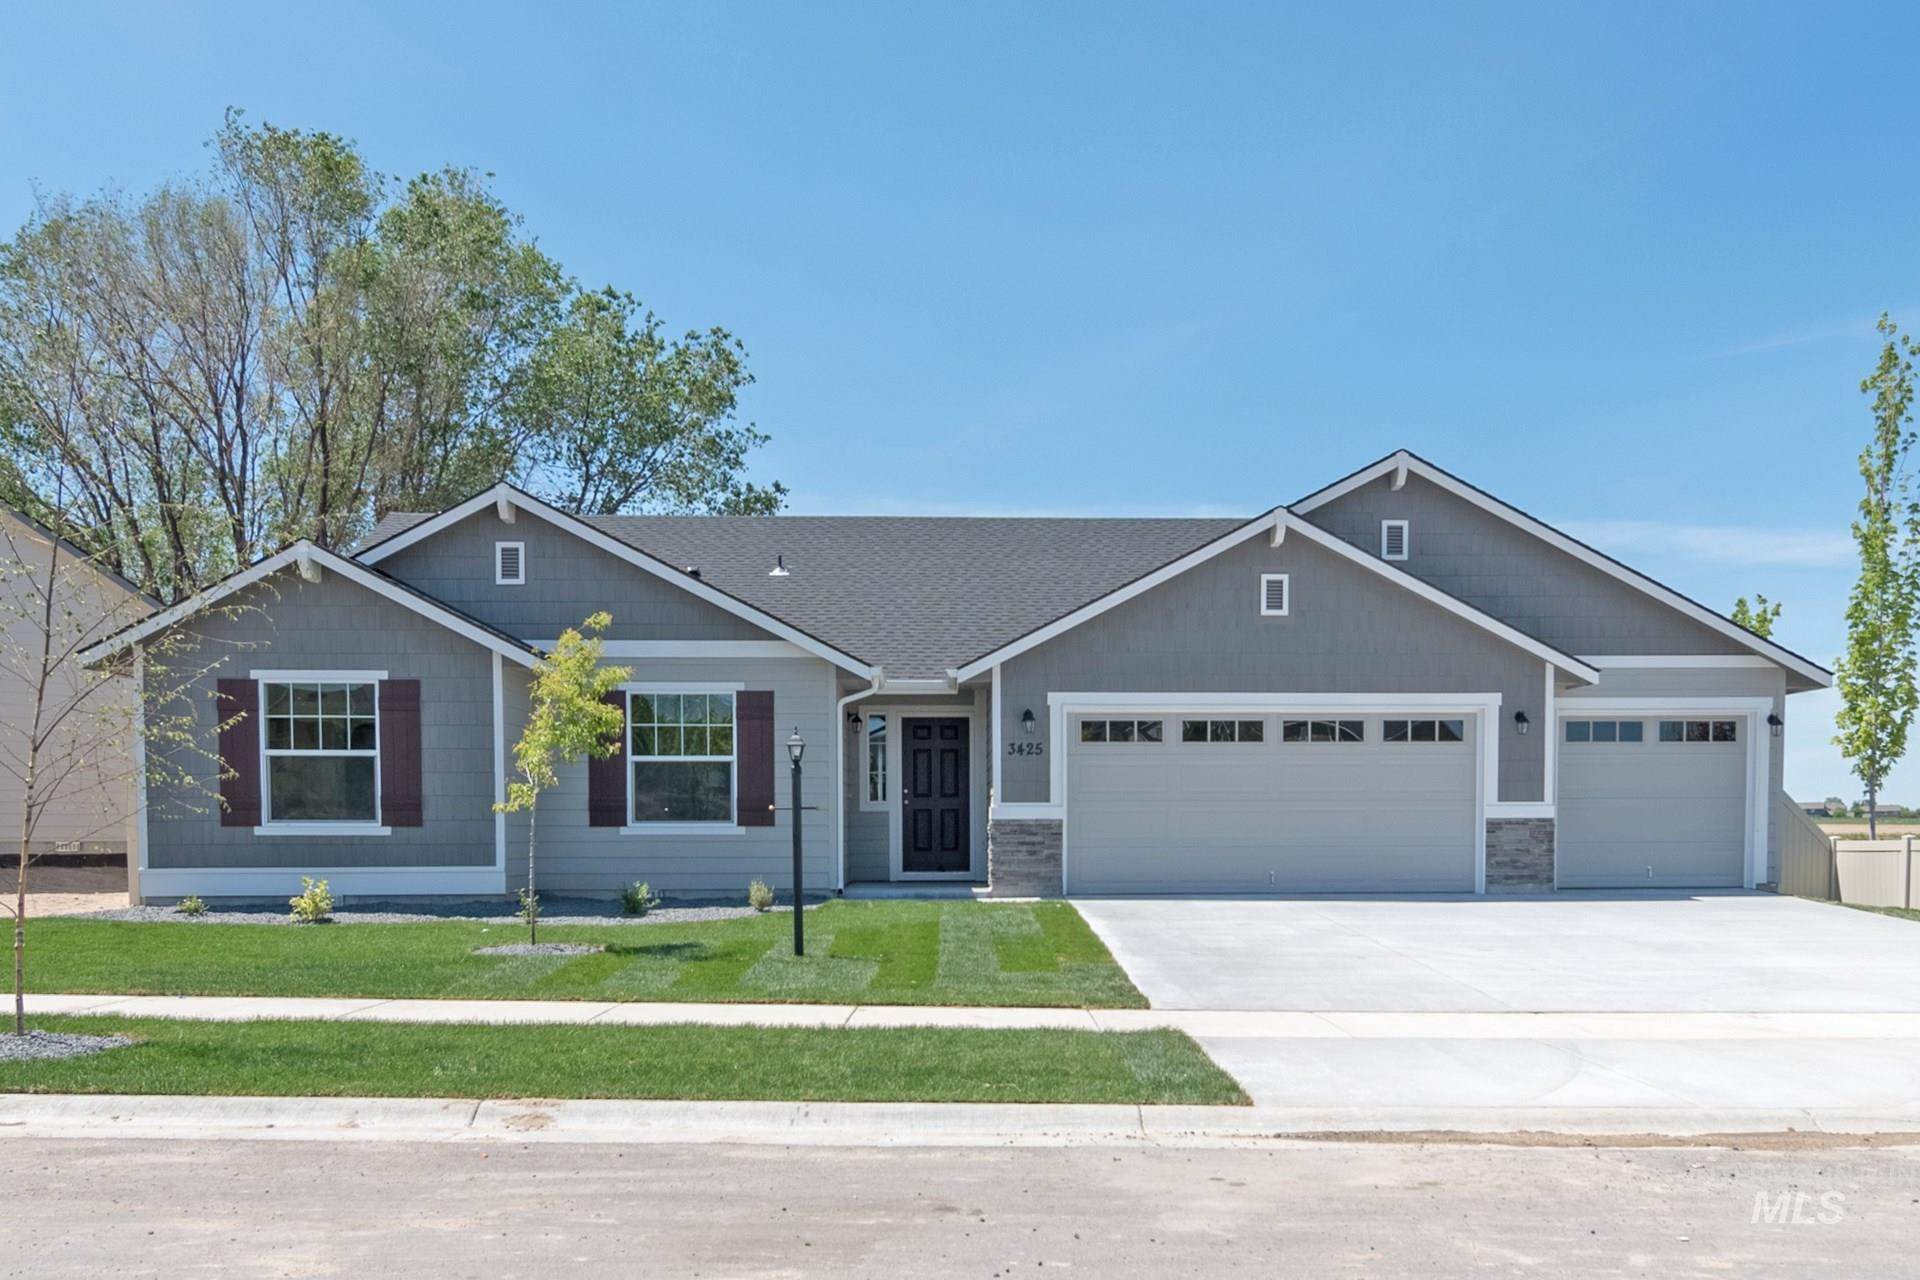 13189 S Coquille River Ave Property Photo - Nampa, ID real estate listing